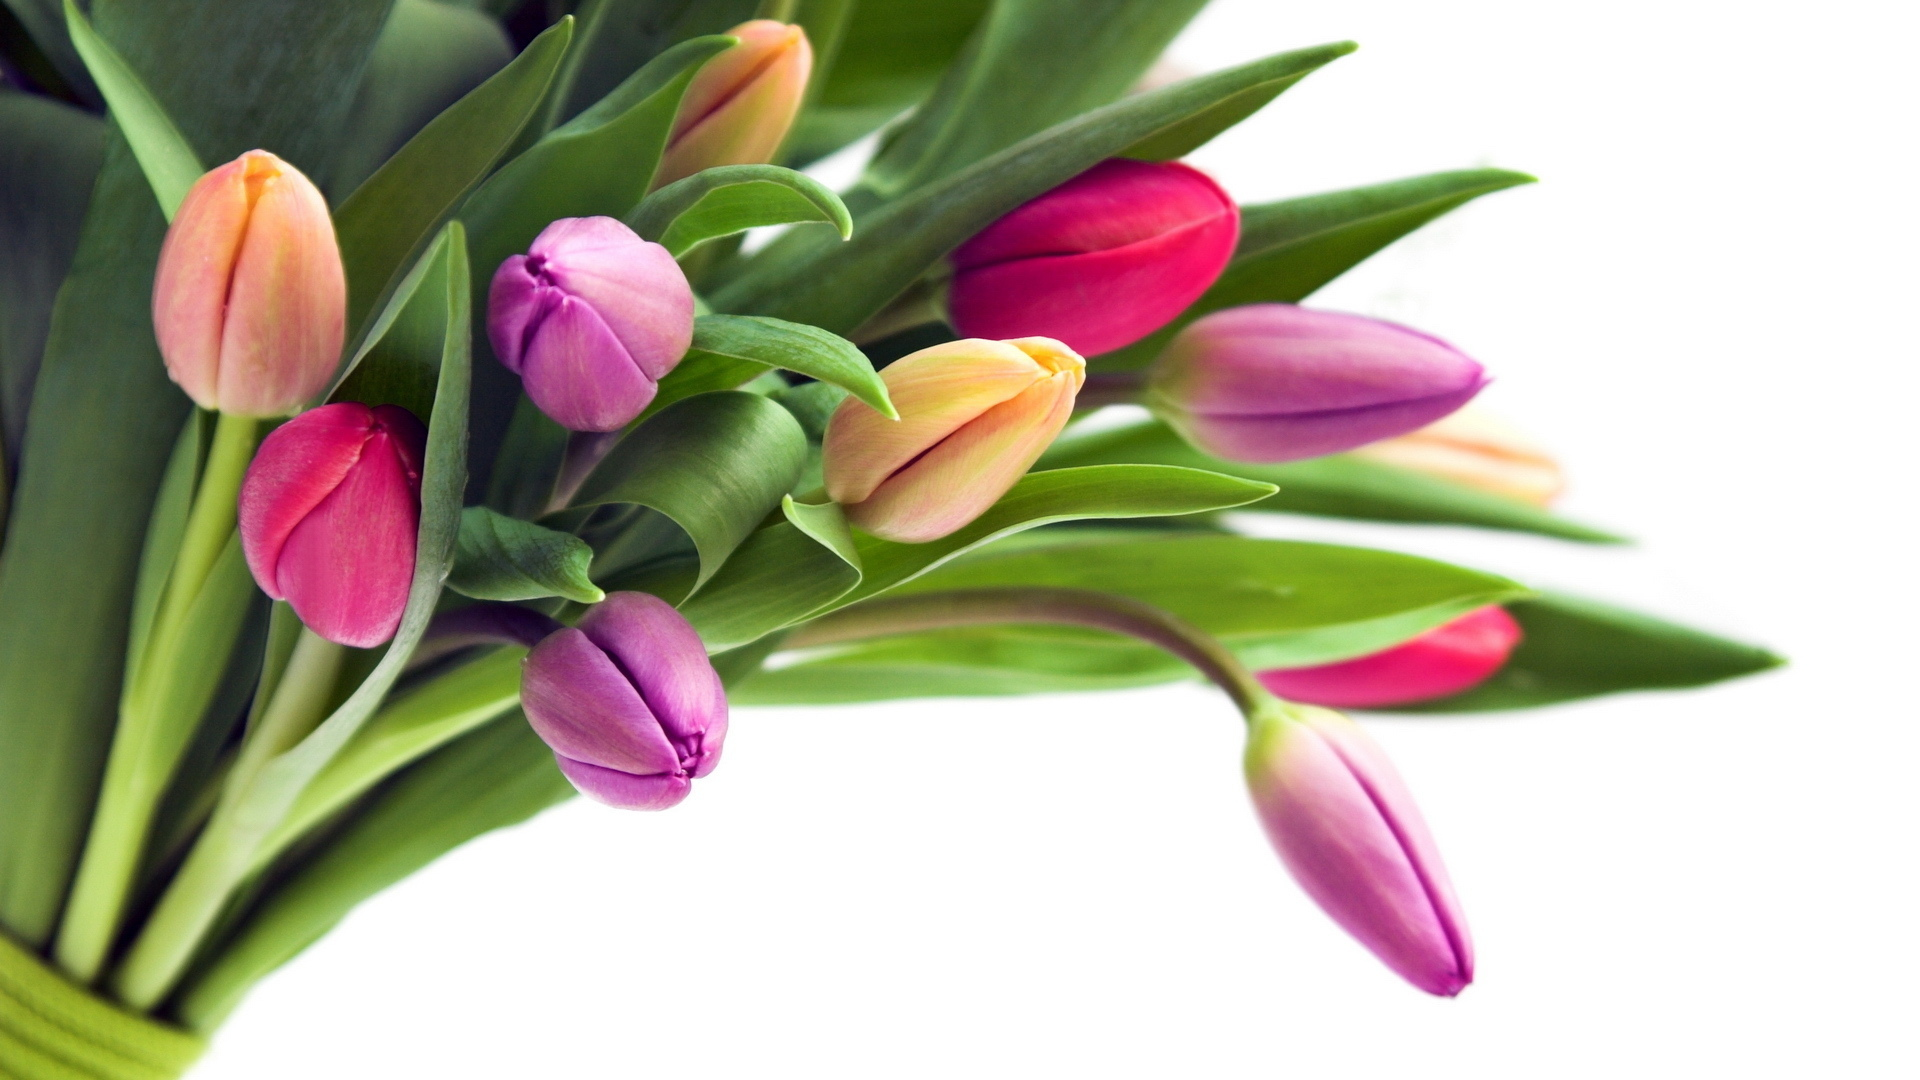 Holidays___International_Womens_Day_Tulips_on_a_white_background_as_a_gift_on_March_8_057119_